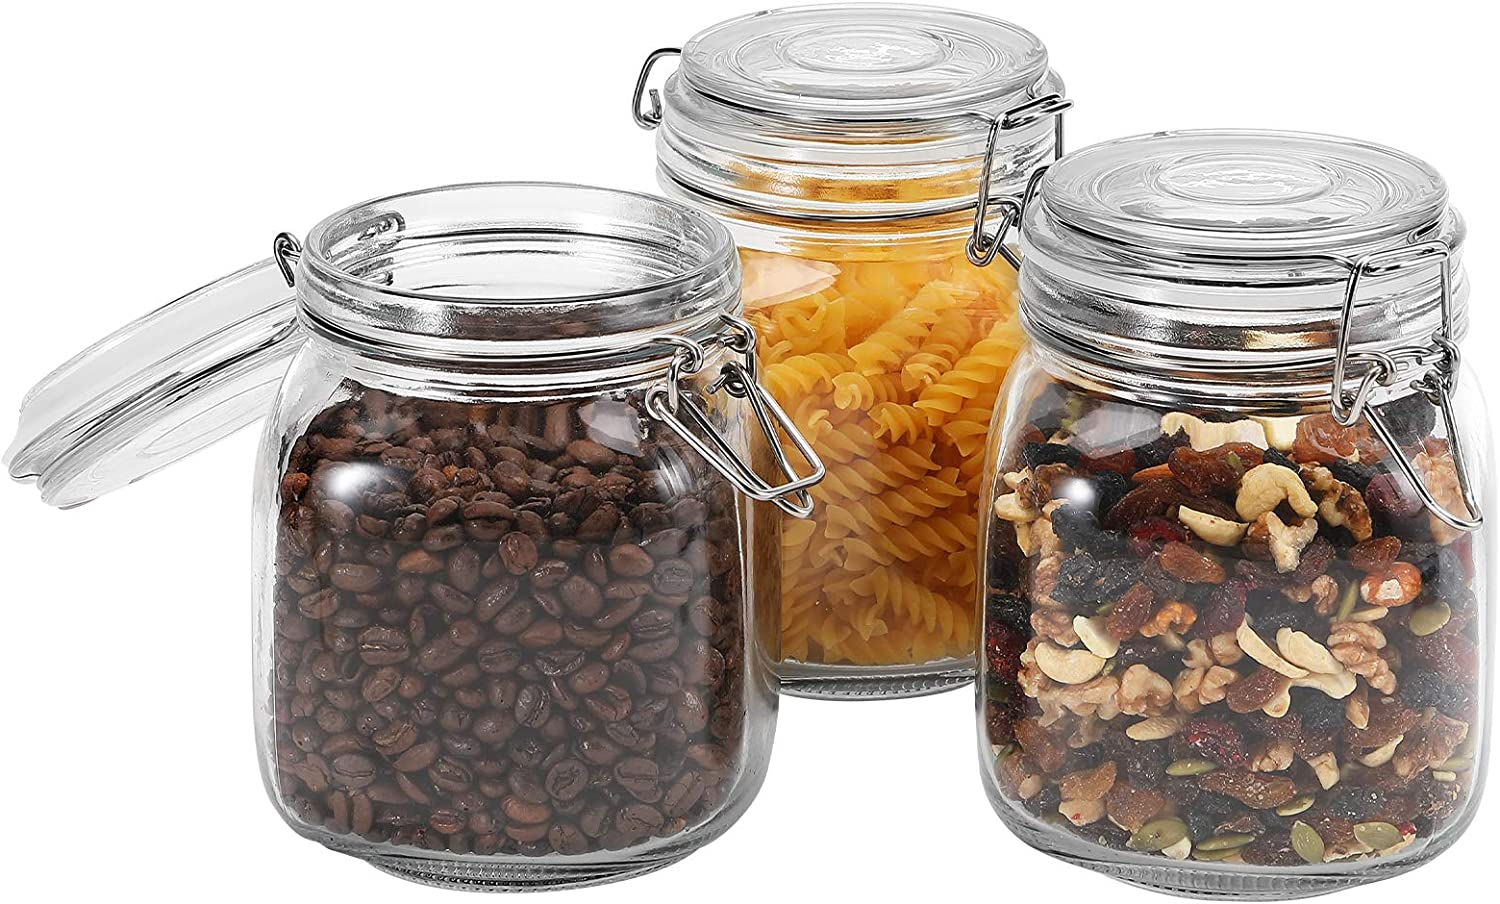 Focus Line Glass Jars with Airtight Lids, Set of 3 Food Storage Canisters Square, Storage Containers with Leak Proof Rubber Gasket, for Kitchen Canning Cereal Pasta Sugar Spice(34/34/34oz)